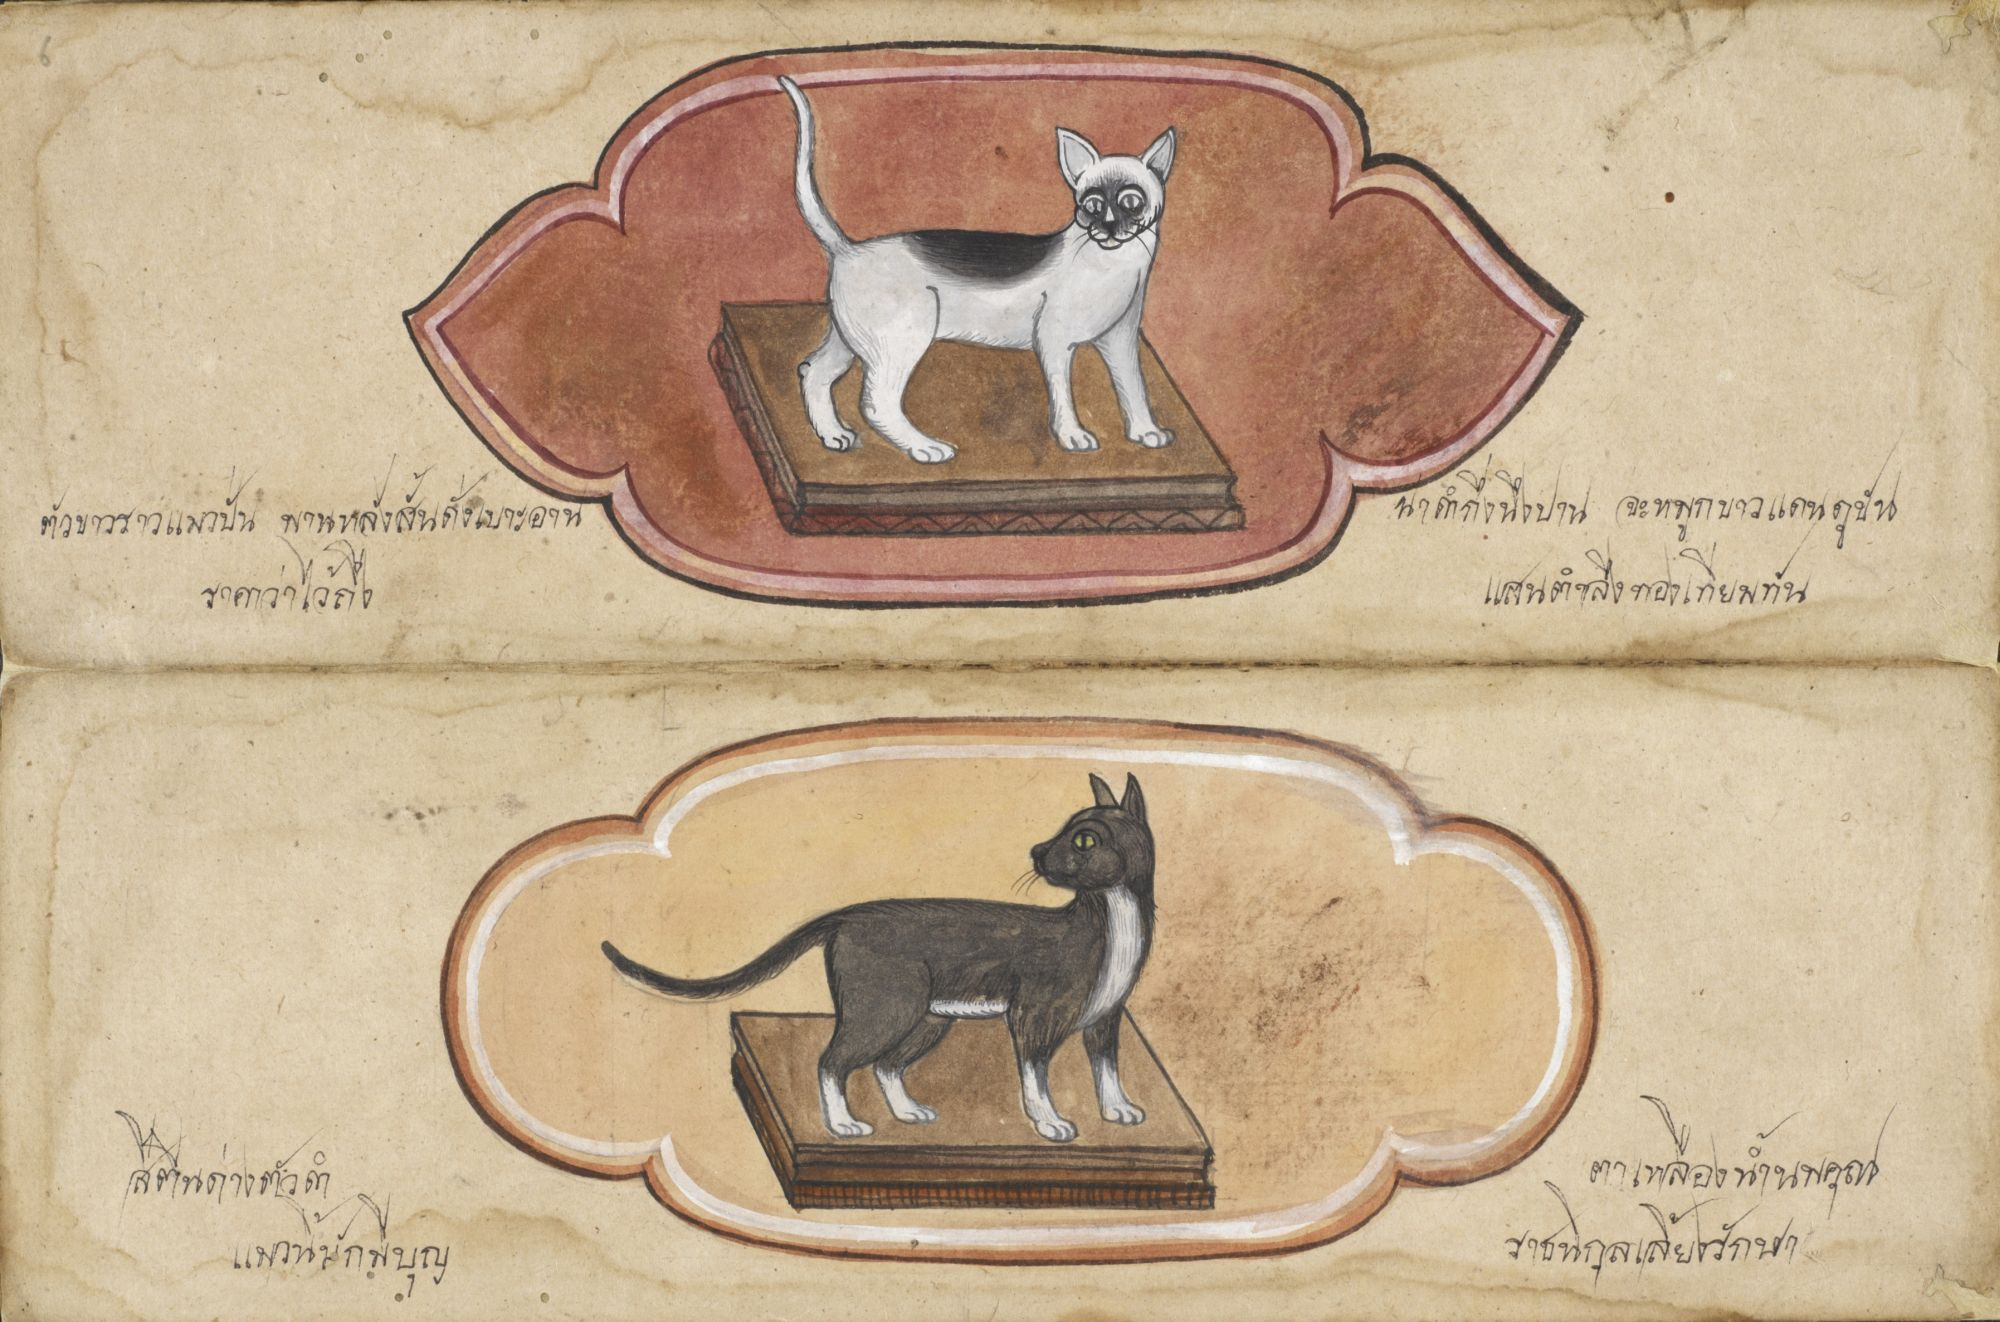 Paper folding book with 23 illustrations of cats from central Thailand, 19th century.